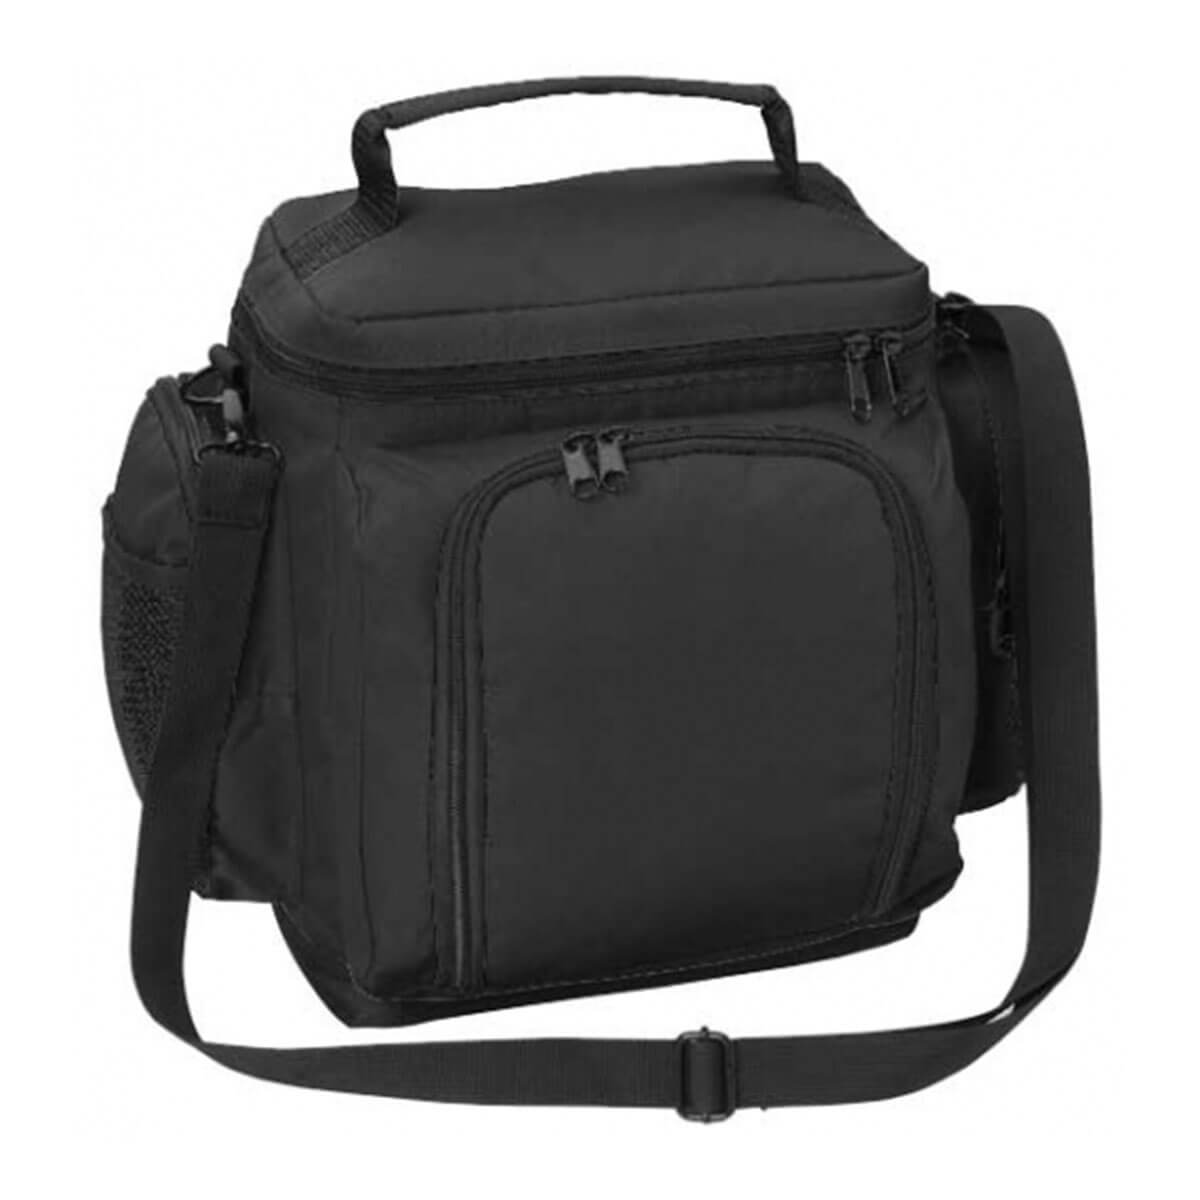 Deluxe Cooler Bag-Black